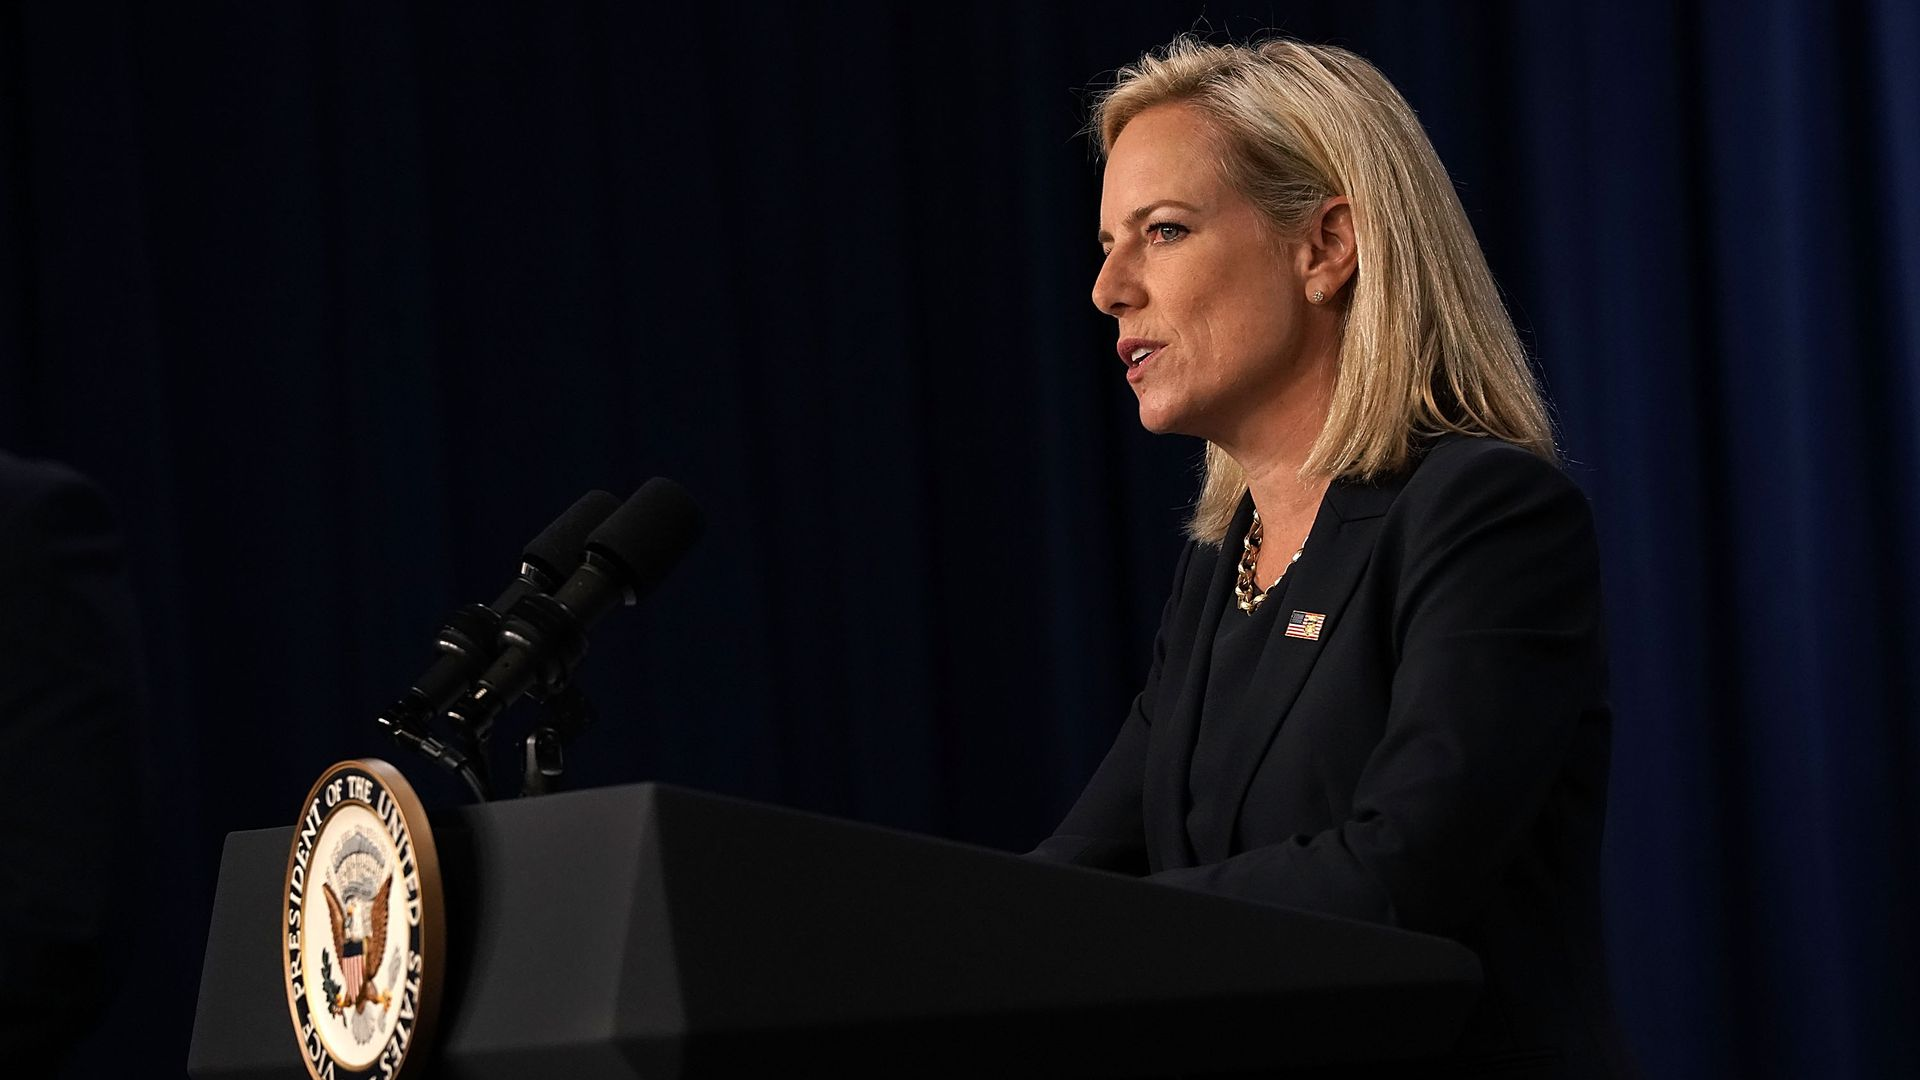 Kirstjen Nielsen speaking at a podium.